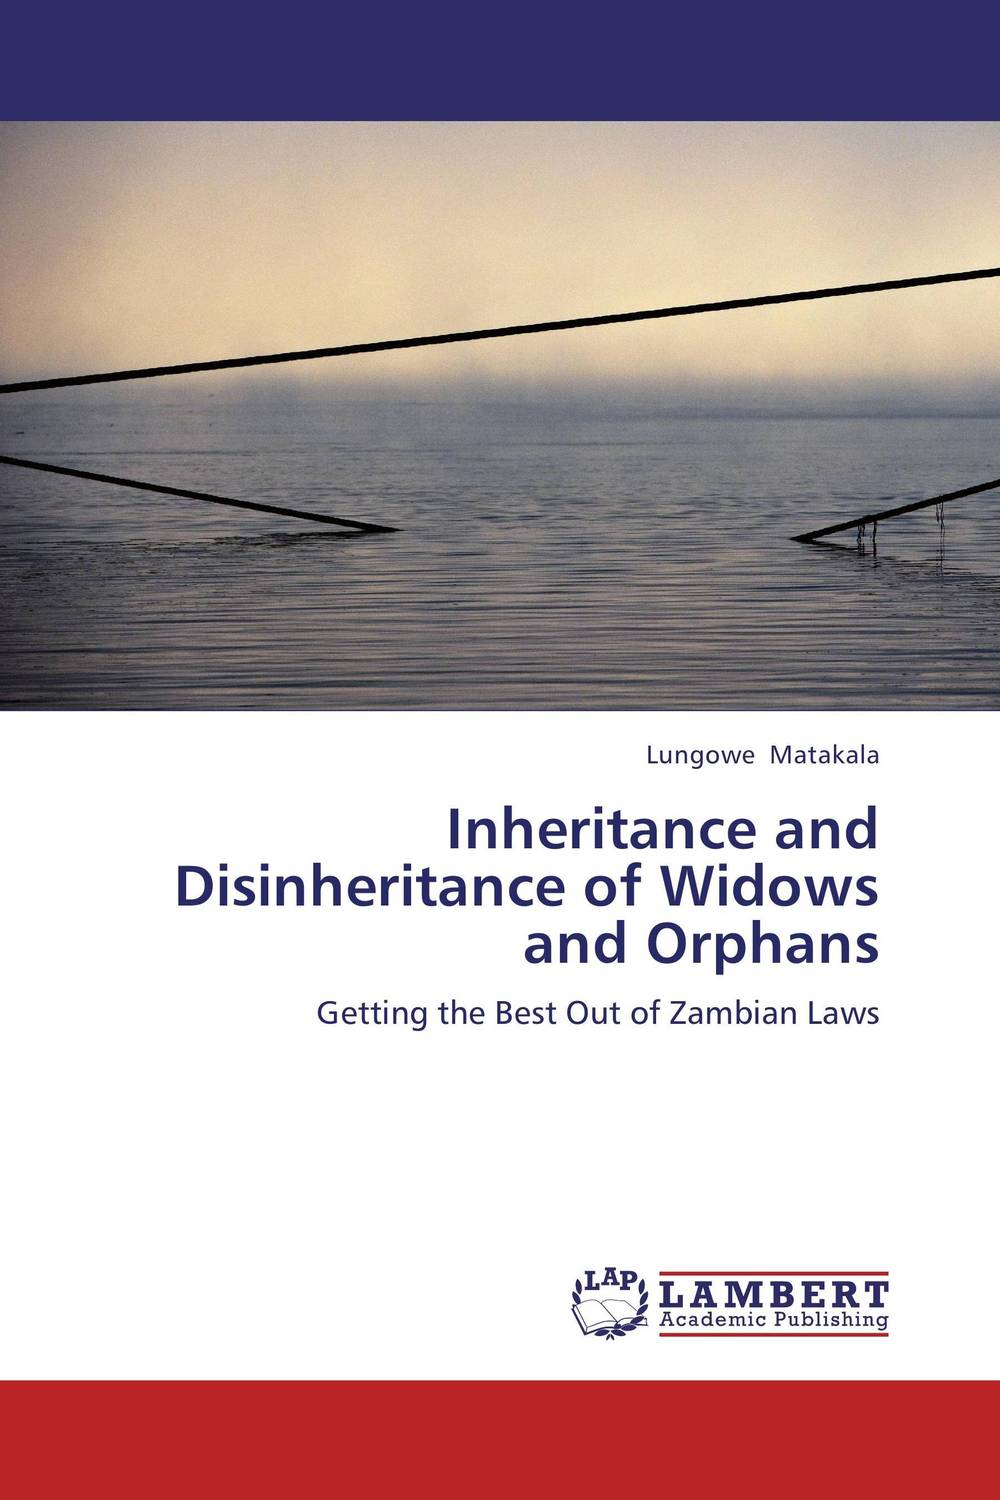 Inheritance and Disinheritance of Widows and Orphans victims stories and the advancement of human rights